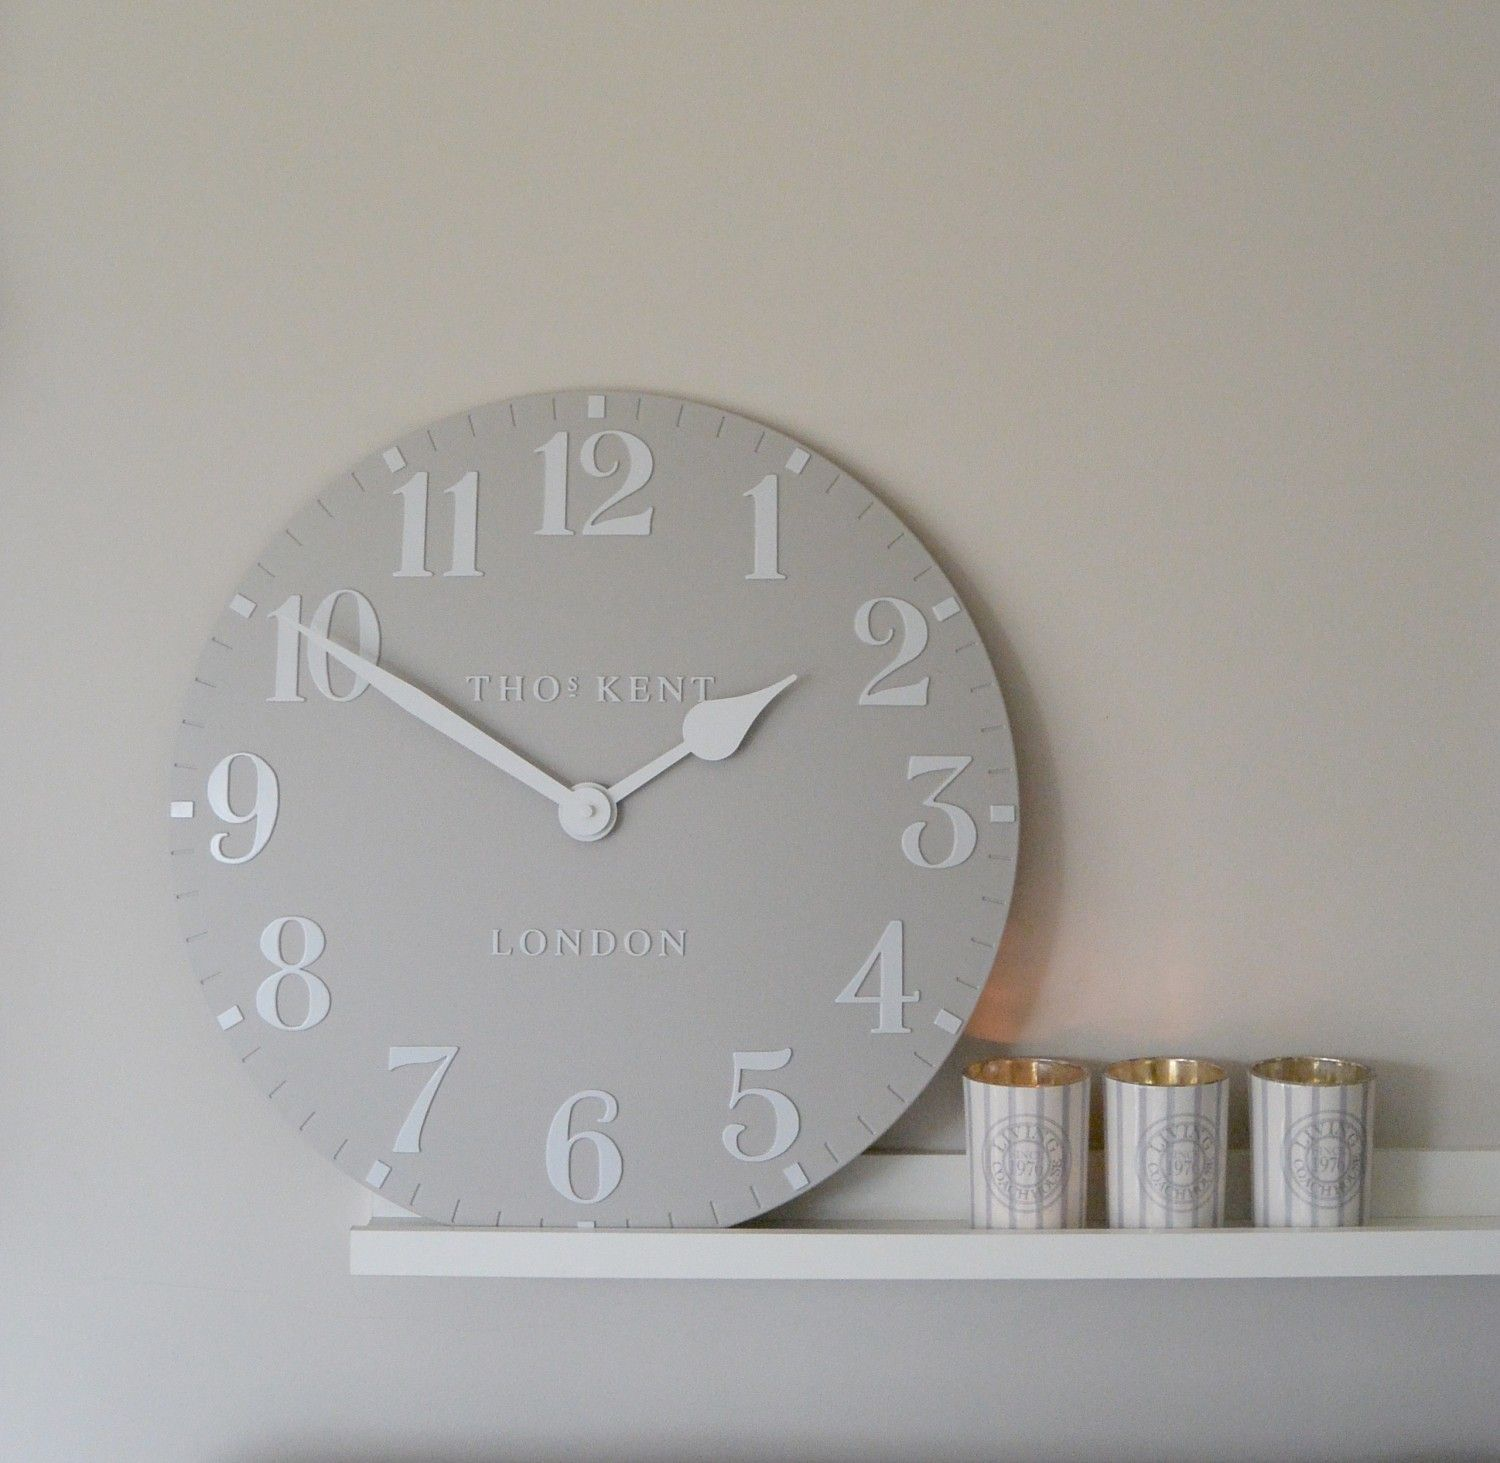 Clocks for bathroom wall - Clo006 Dove Grey 12 22 Thomas Kent Wall Clock